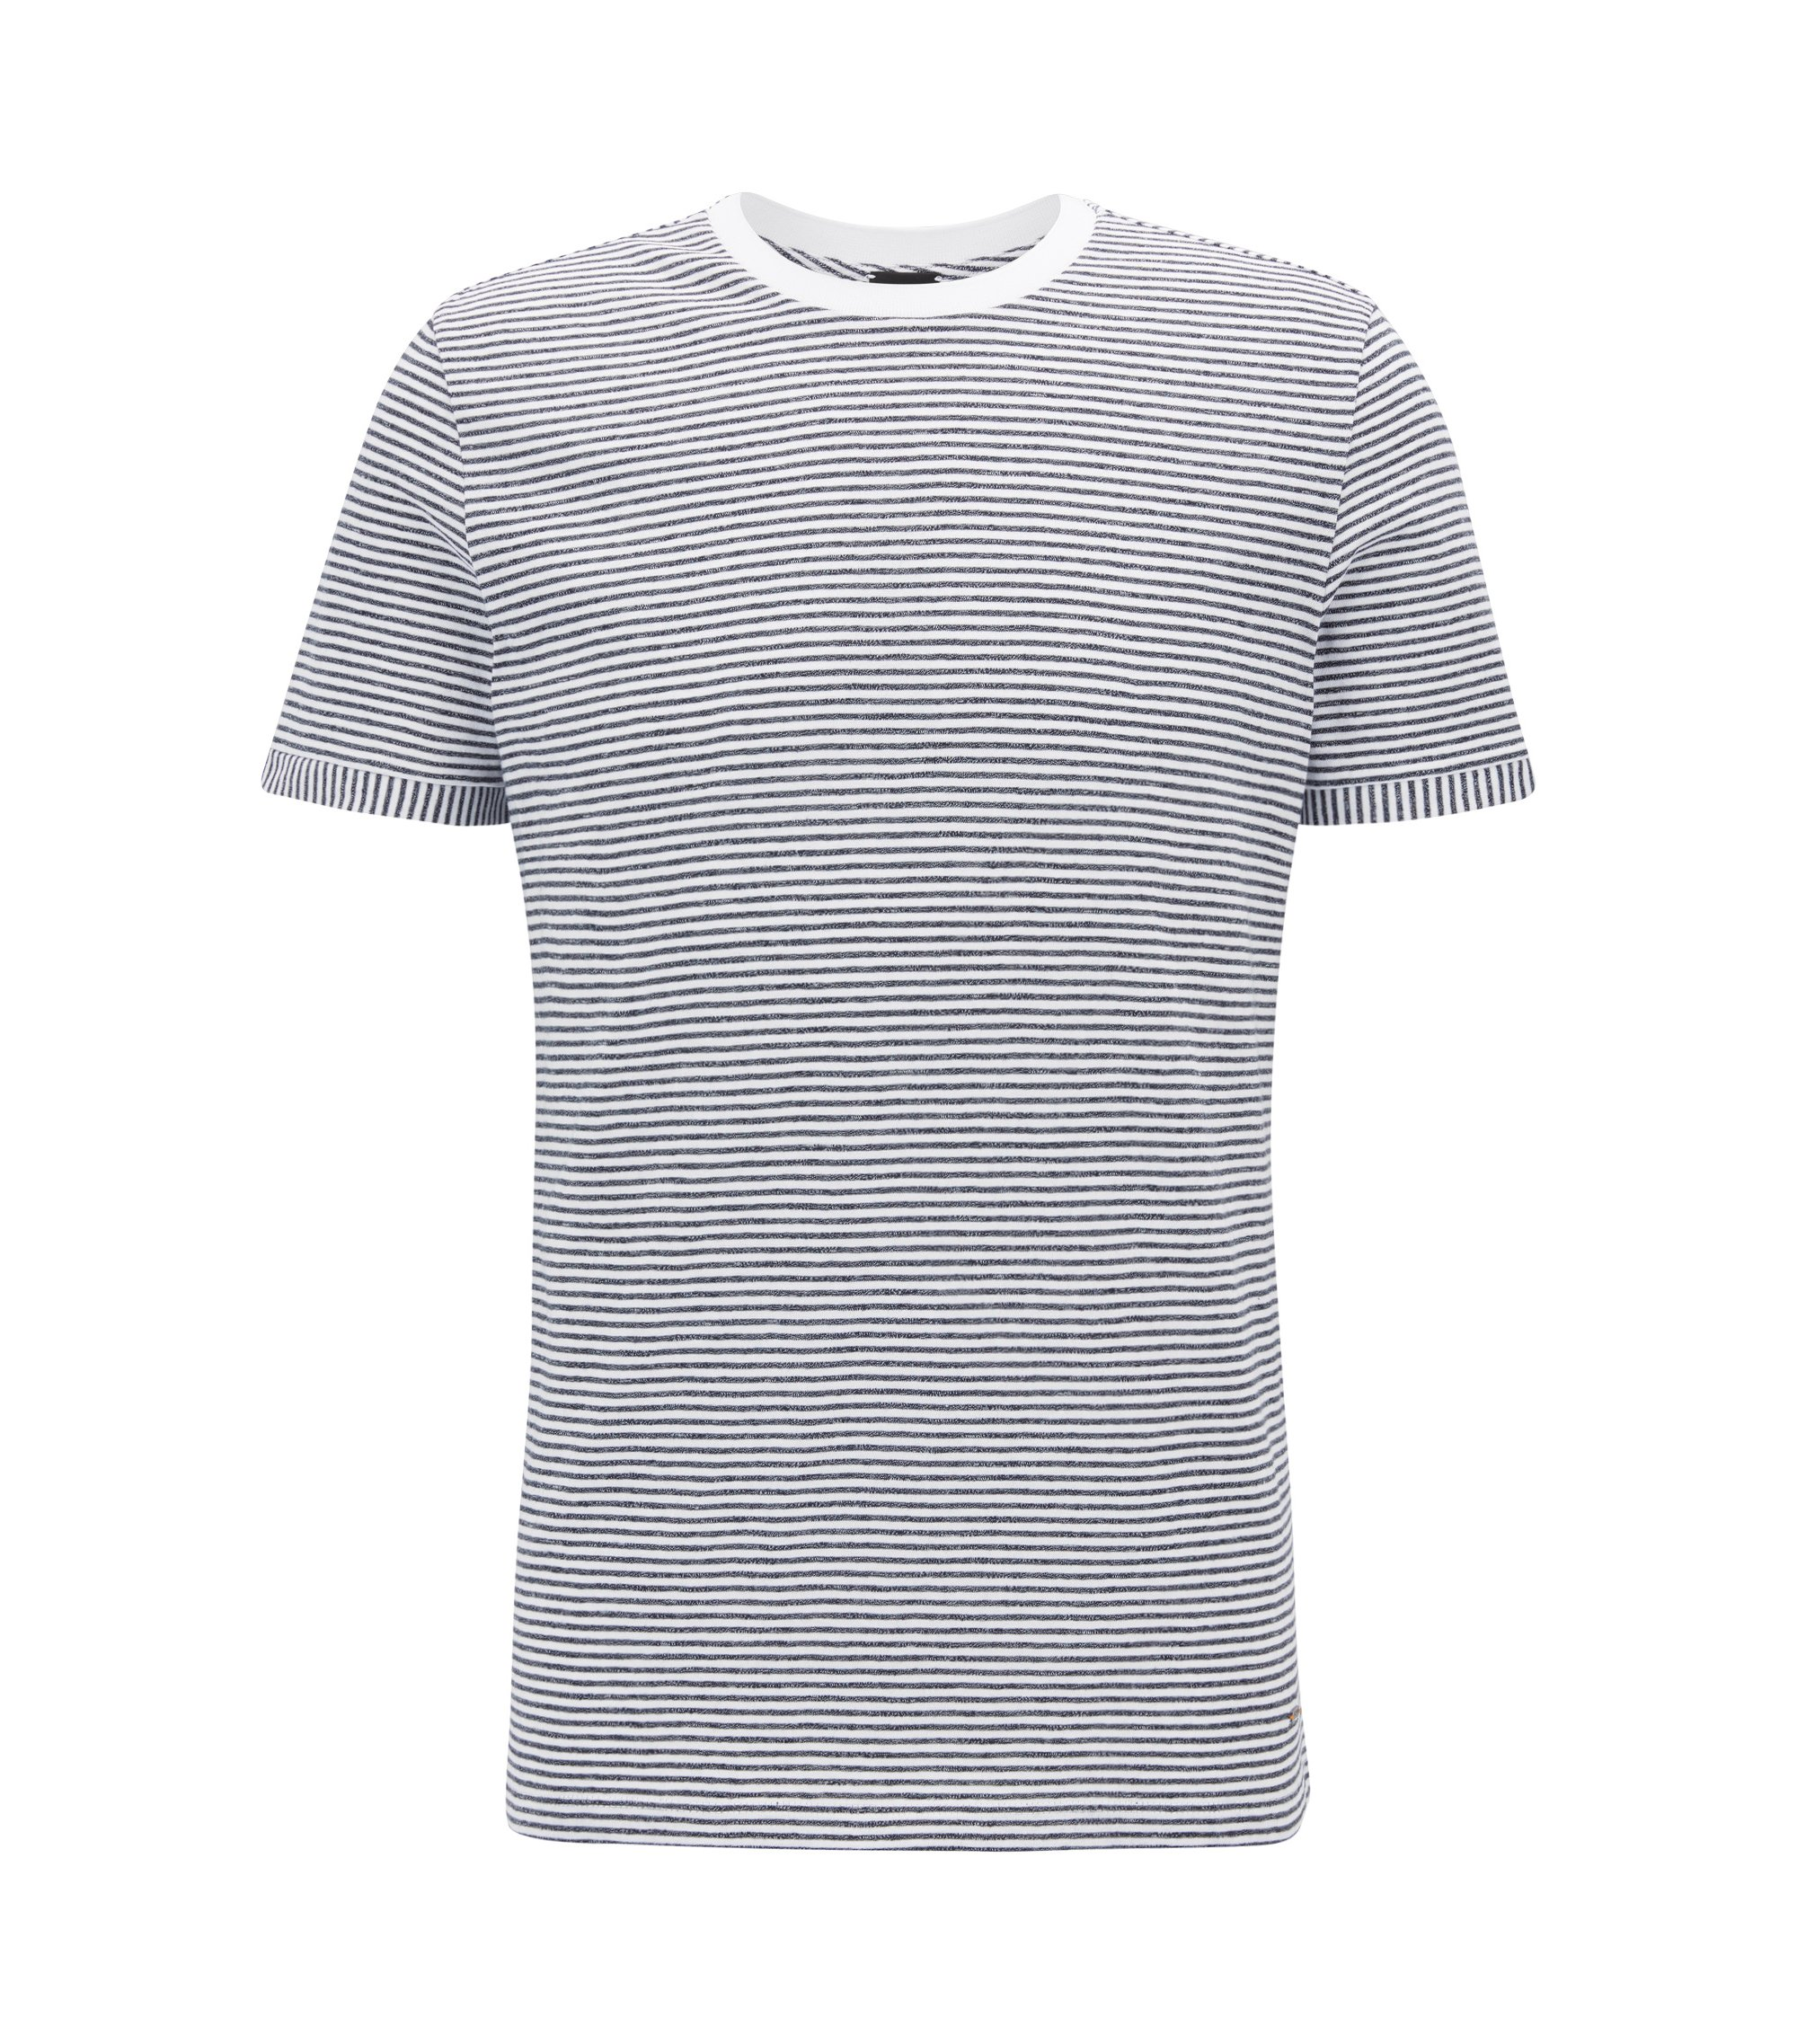 Camiseta regular fit en mezcla de algodón mouliné, Blanco